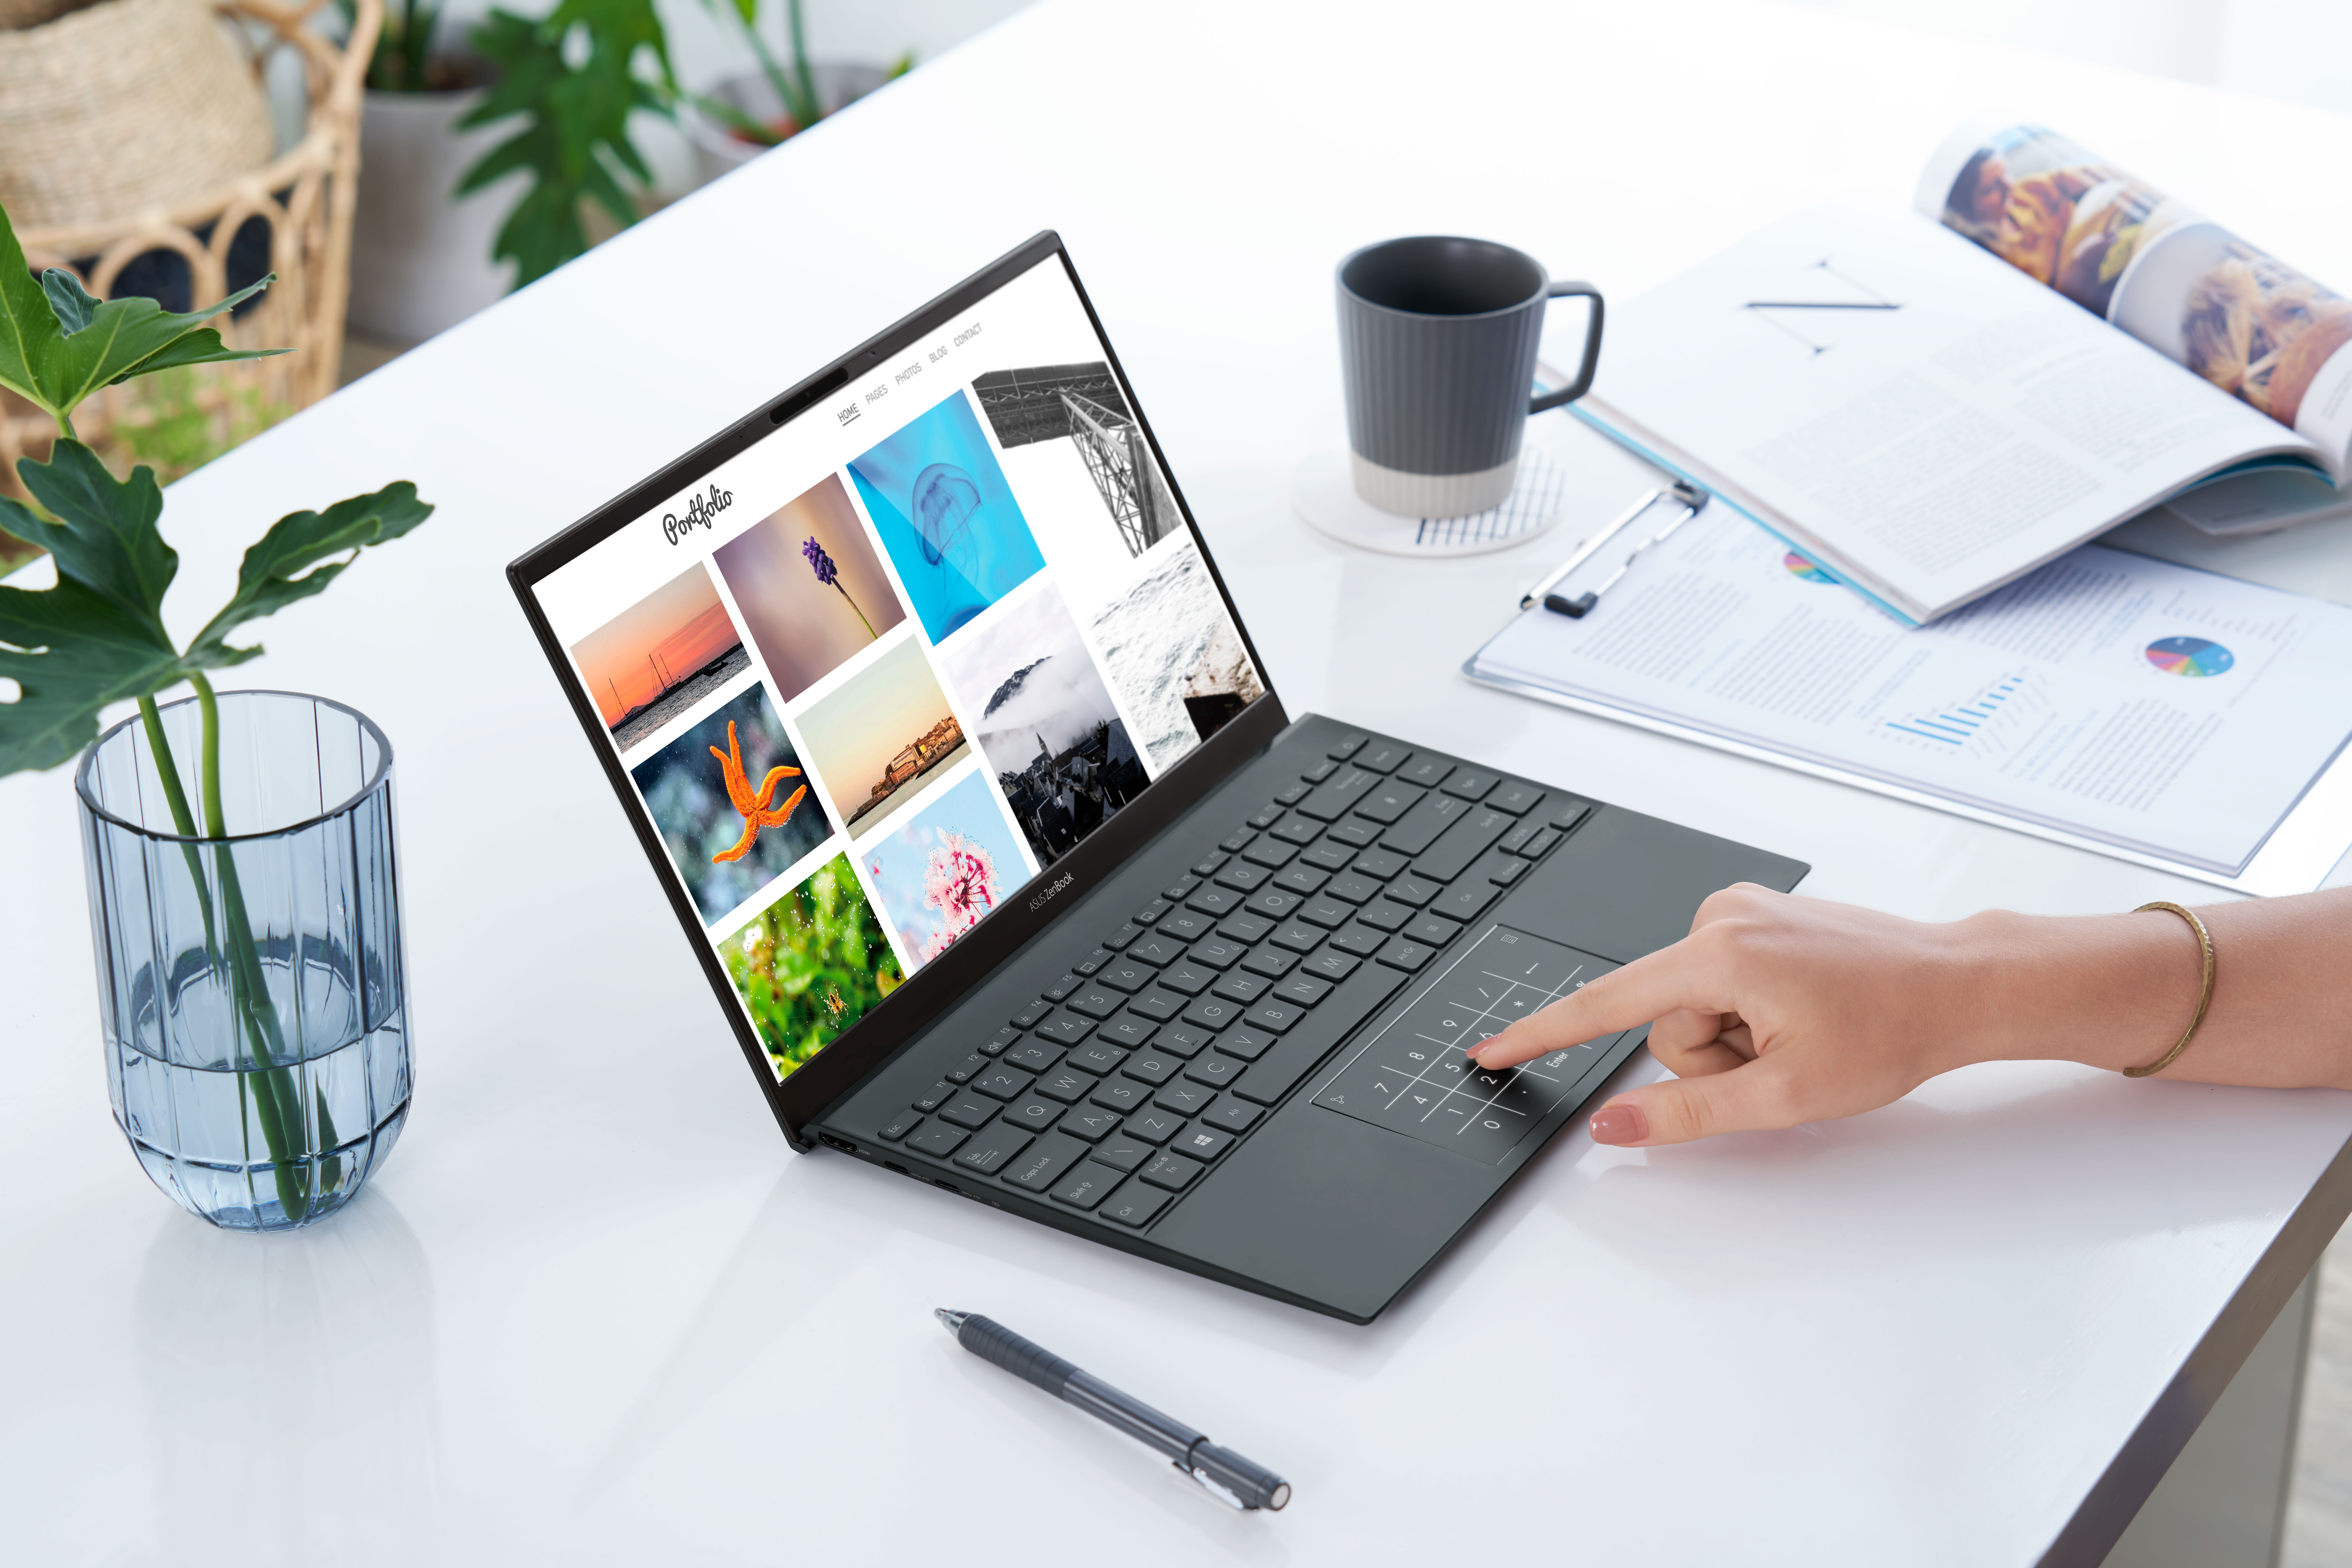 New ZenBook 14 is more portable than ever.